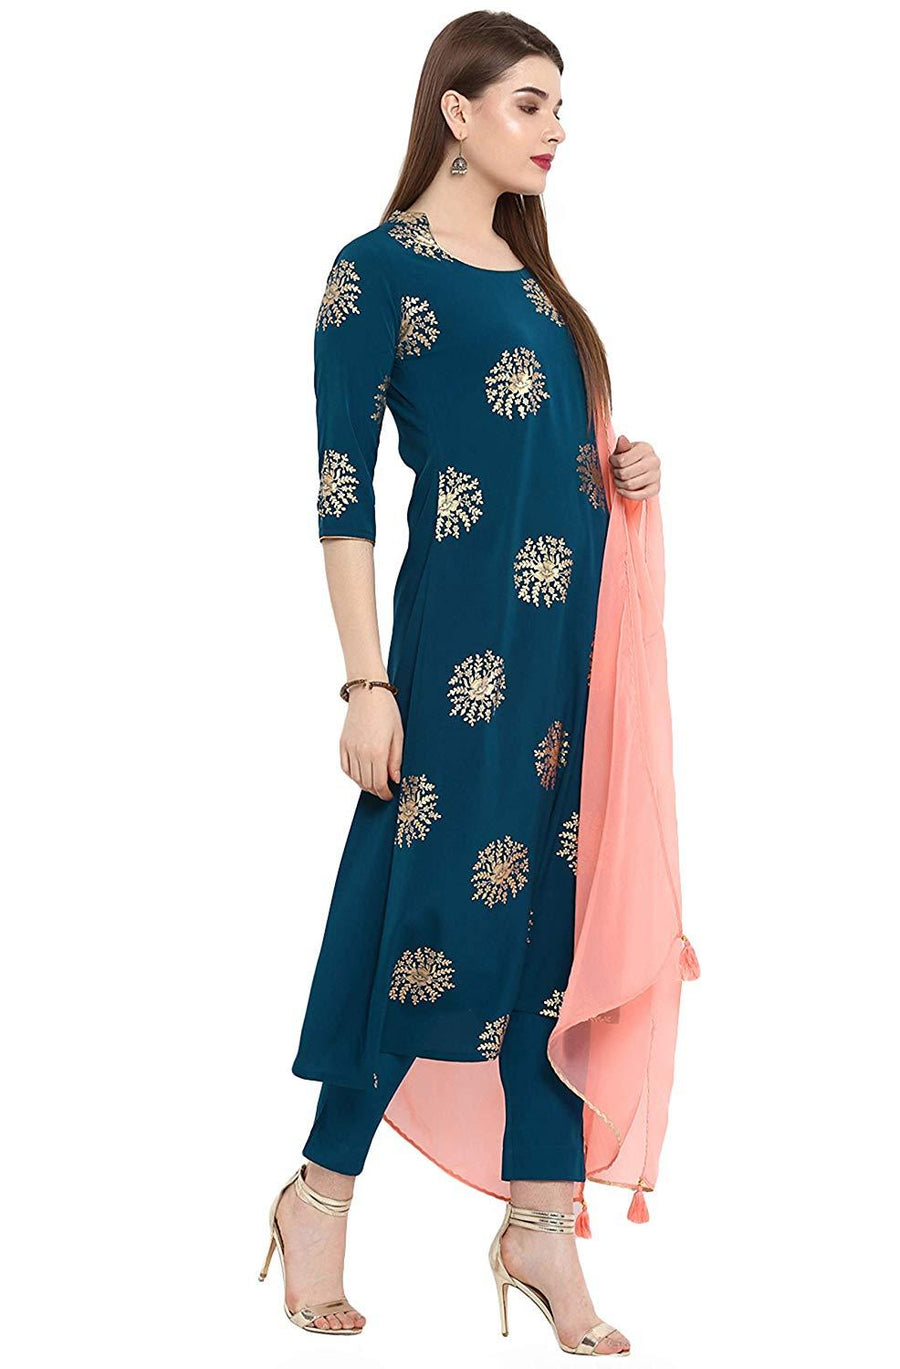 Flaray Women's Turquoise Crepe Kurta With Pant And Dupatta - iZiffy.com